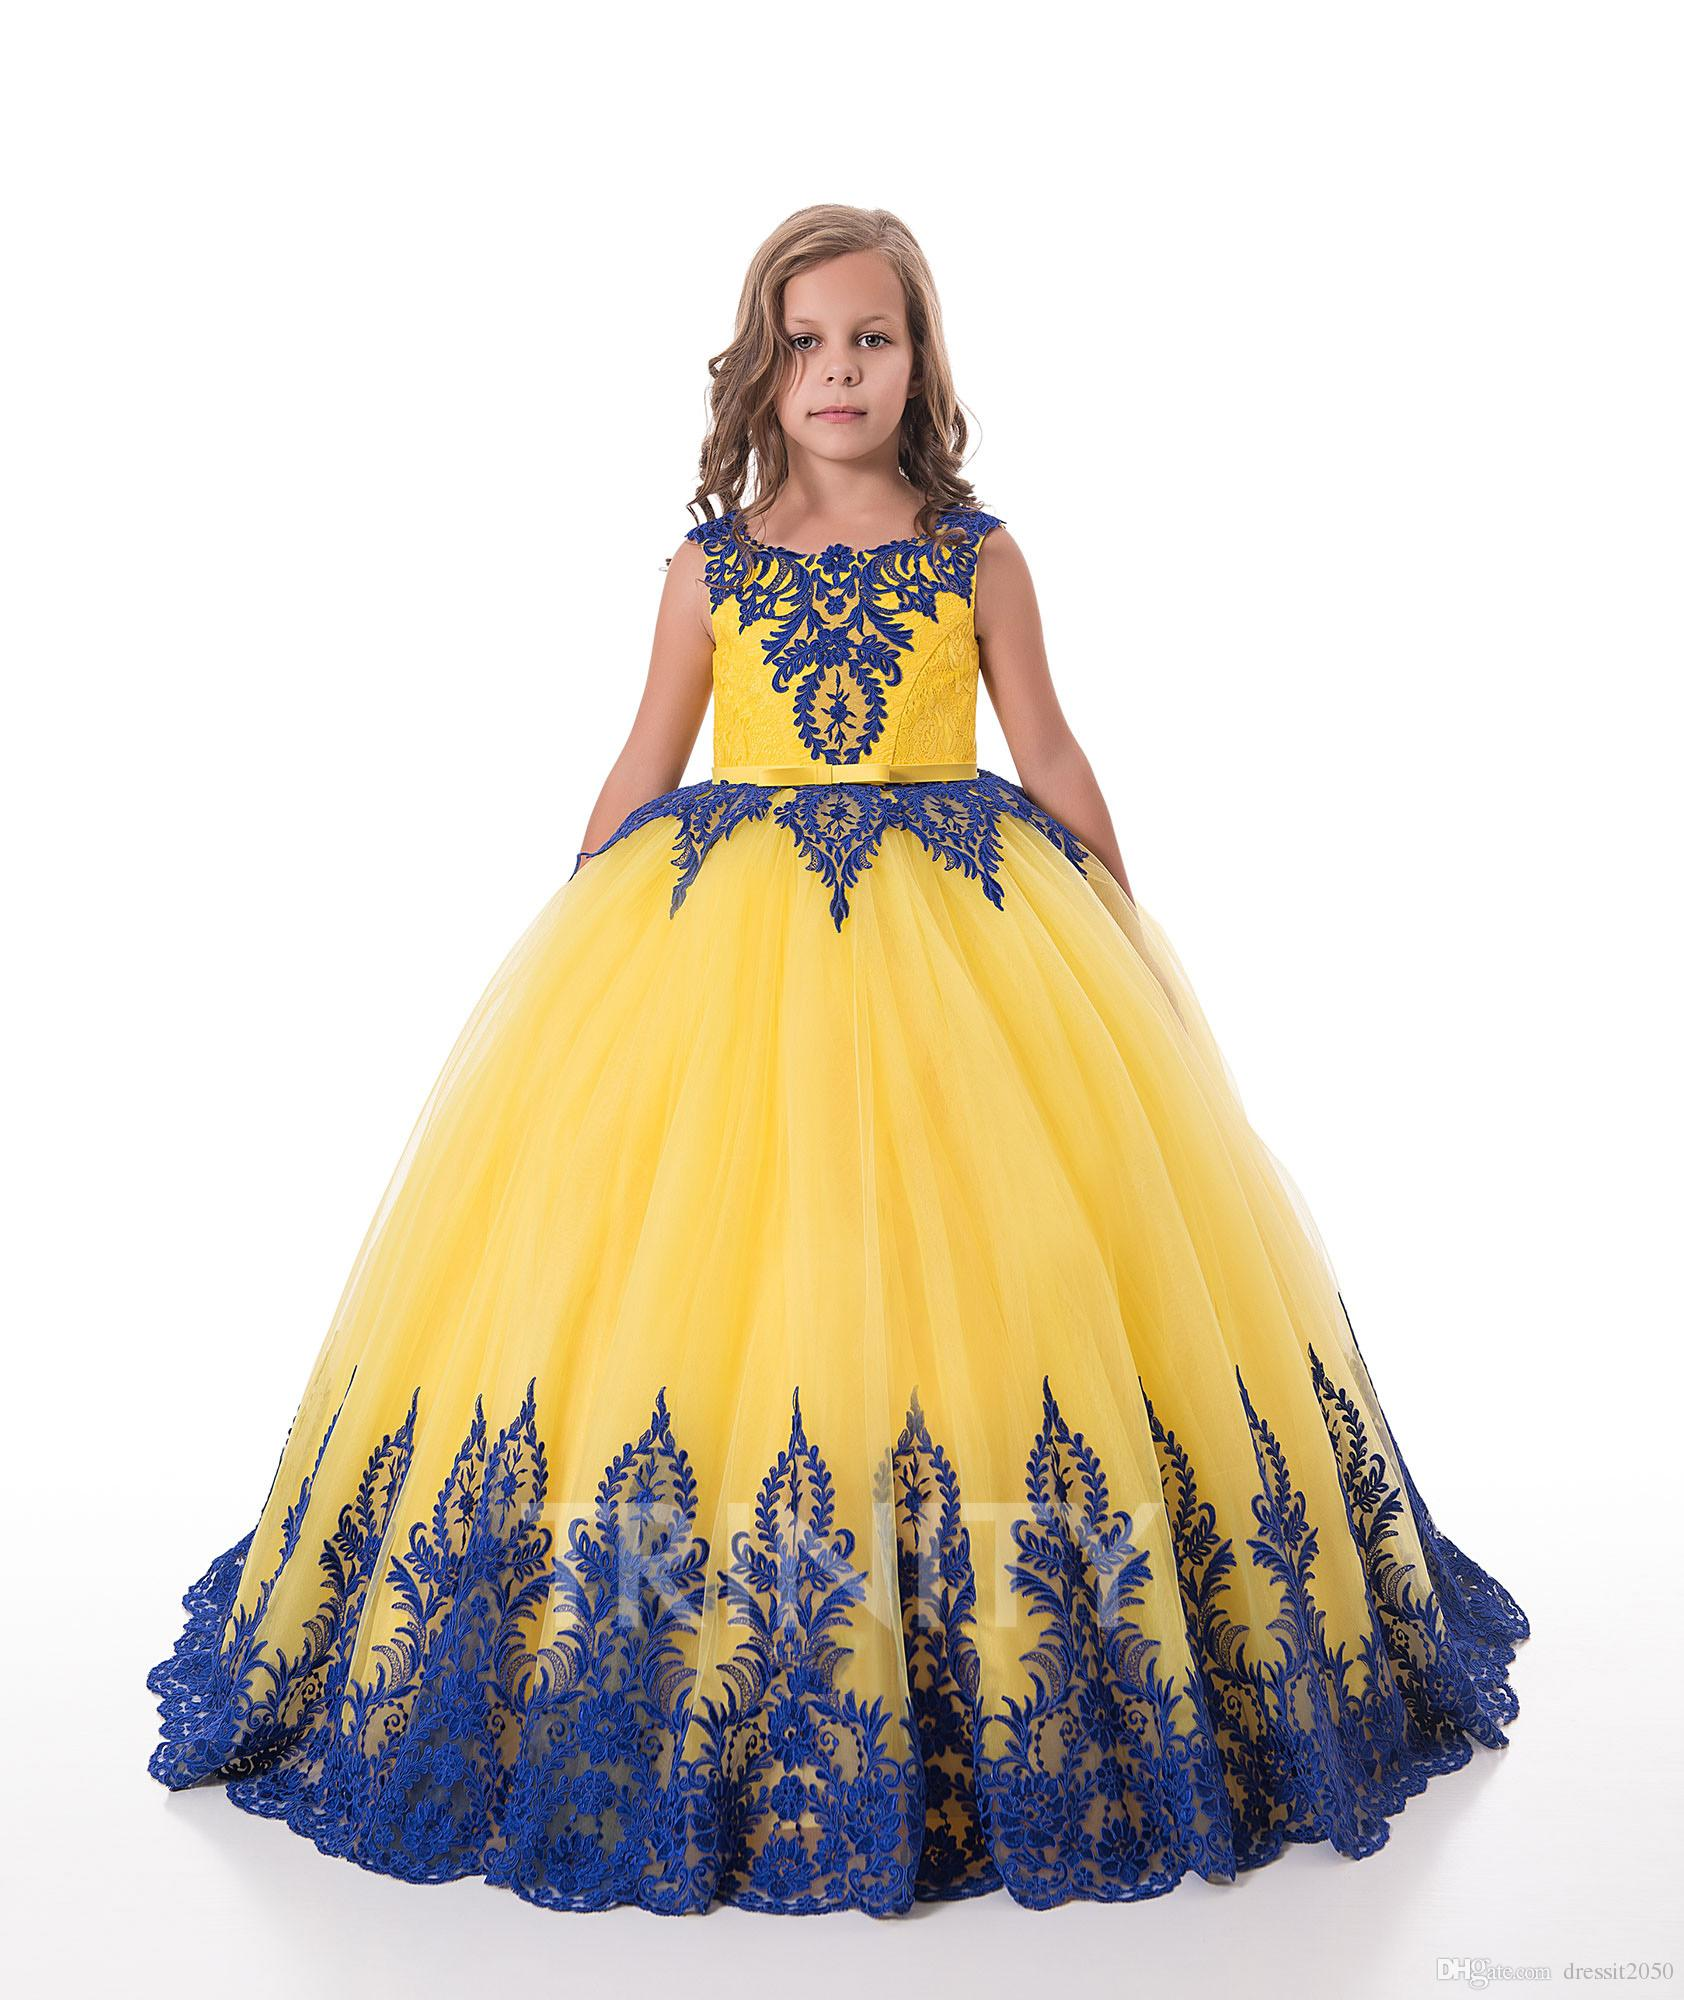 275f667a69a Bright Yellow Royal Blue Lace Applique Flower Girl Dresses Girls  Pageant  Dresses Holidays Birthday Dress Skirt Custom Size 2 14 DF711364 Little Girls  In ...